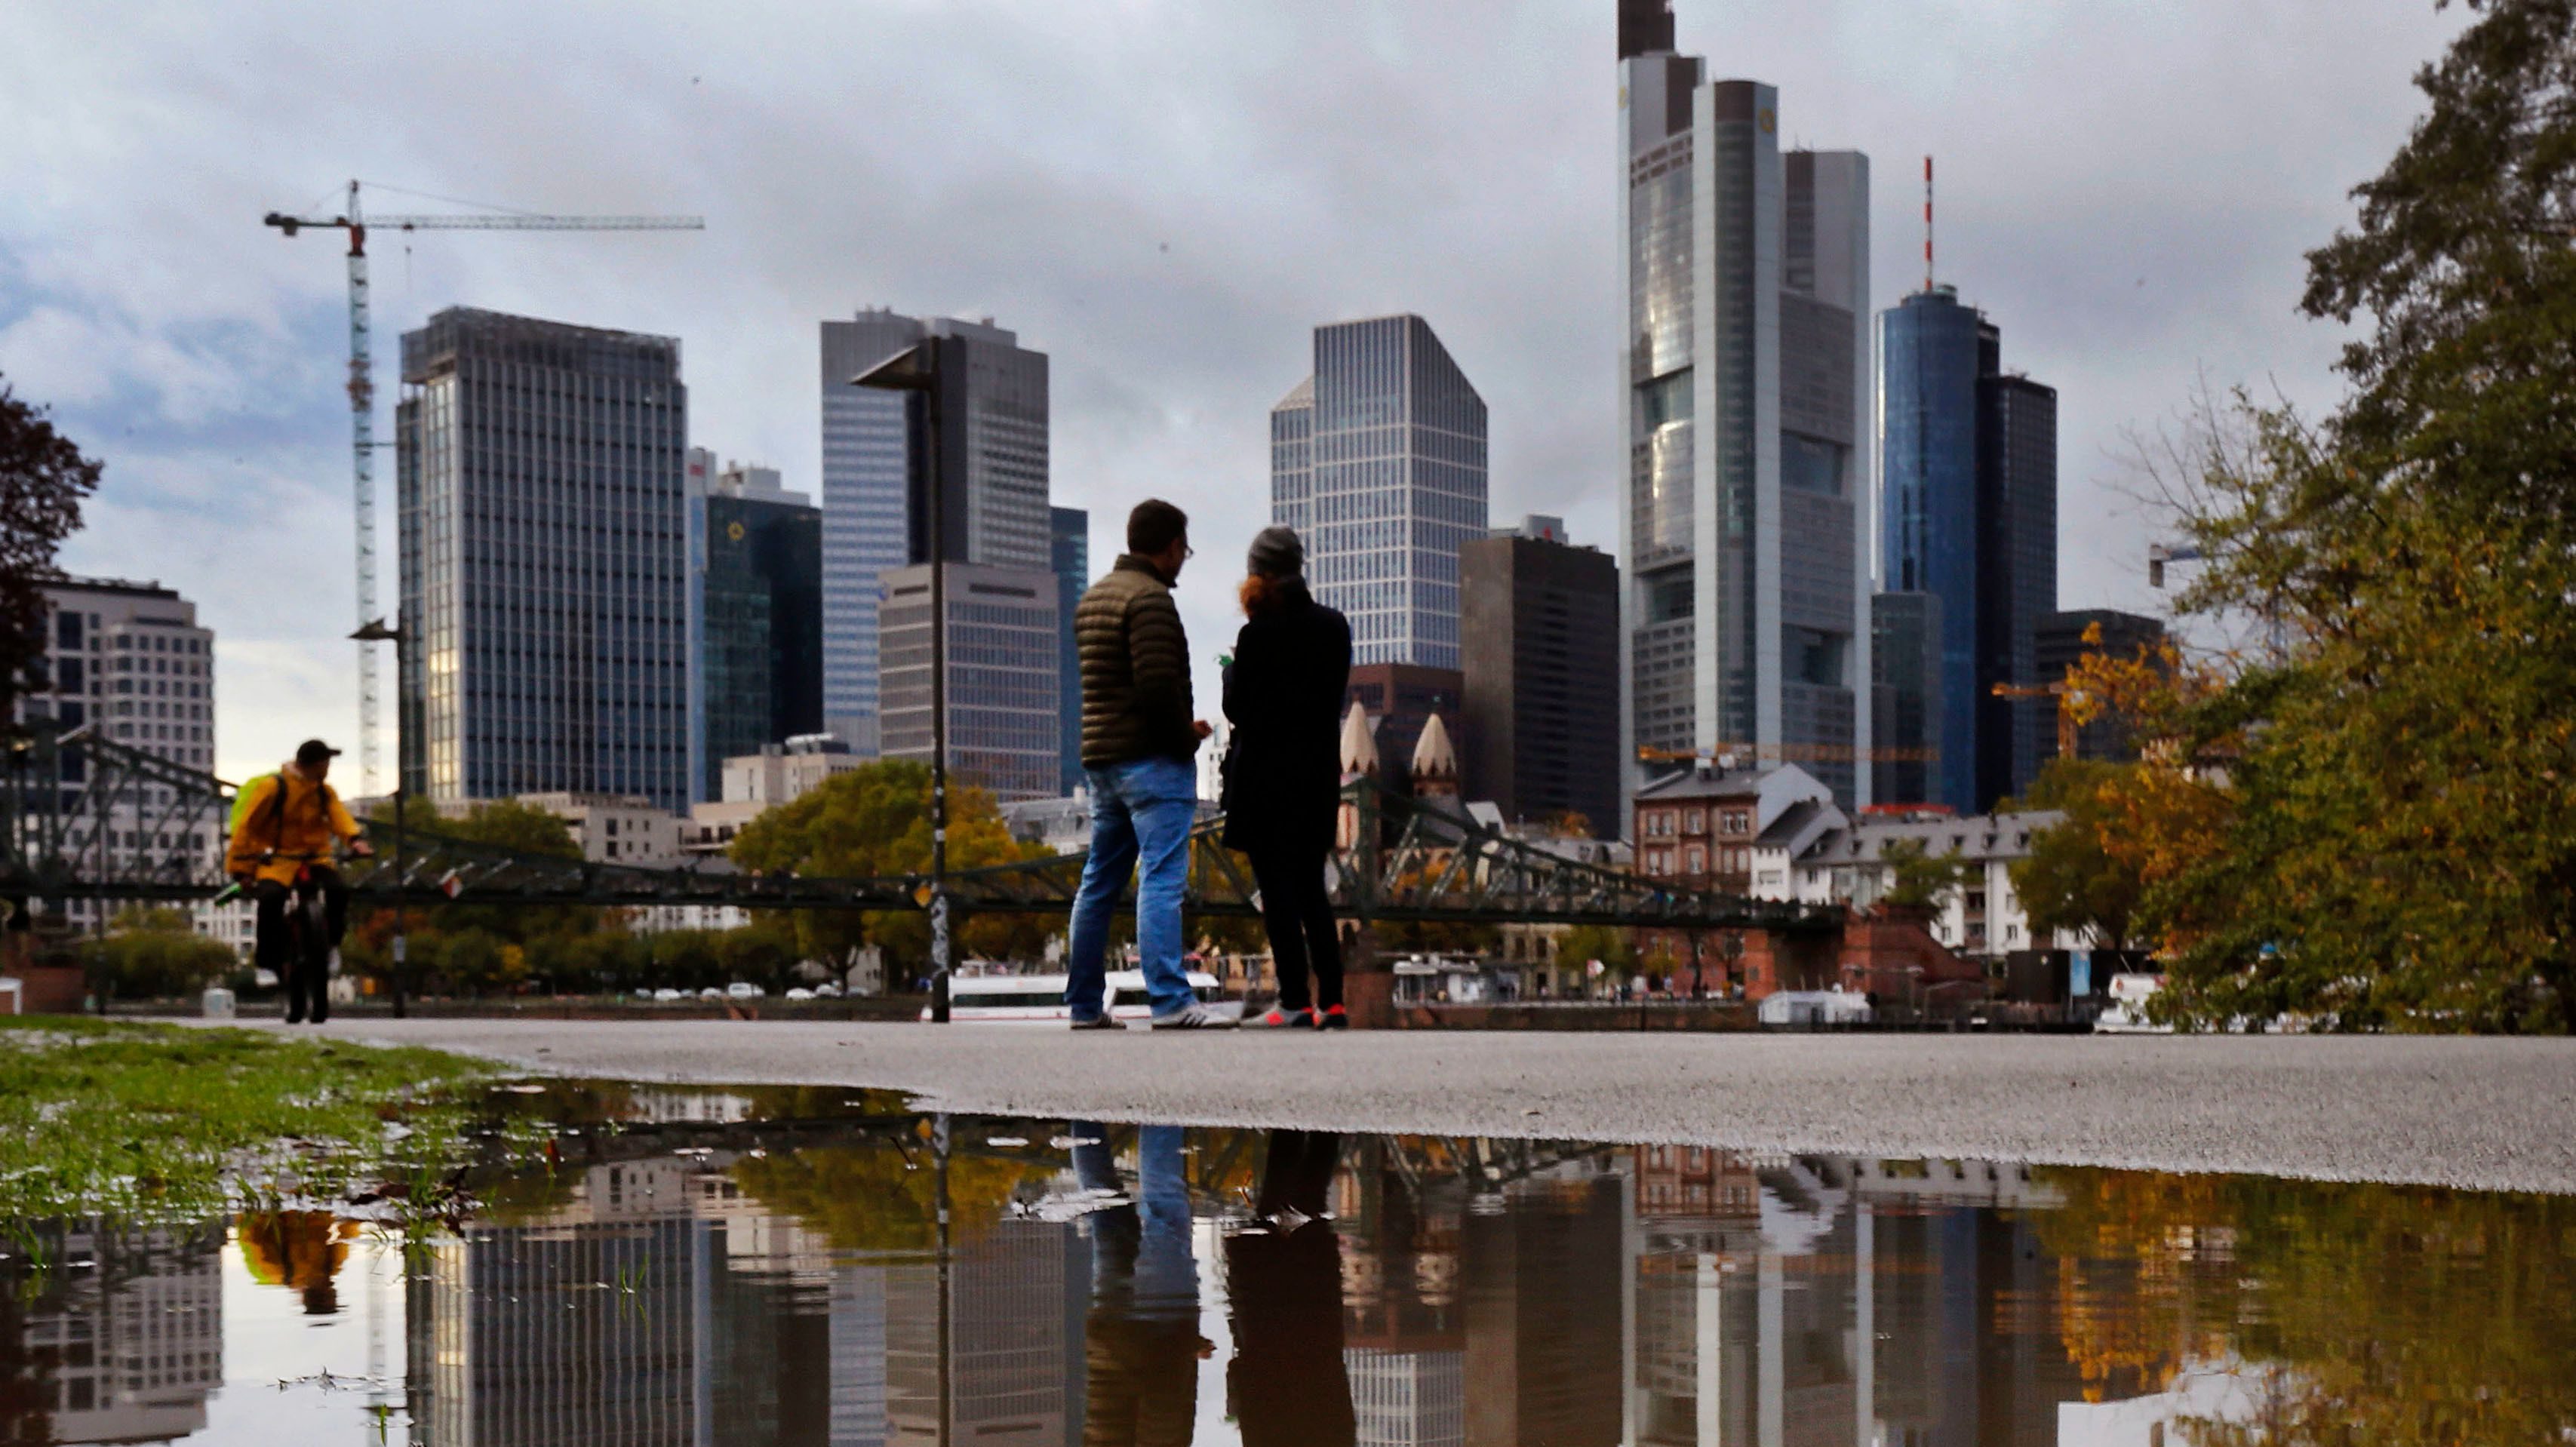 A leaf lies in a puddle where the skyline of the banking district is reflected in Frankfurt, Germany, on a rainy Sunday, Oct. 22, 2017. (AP Photo/Michael Probst)